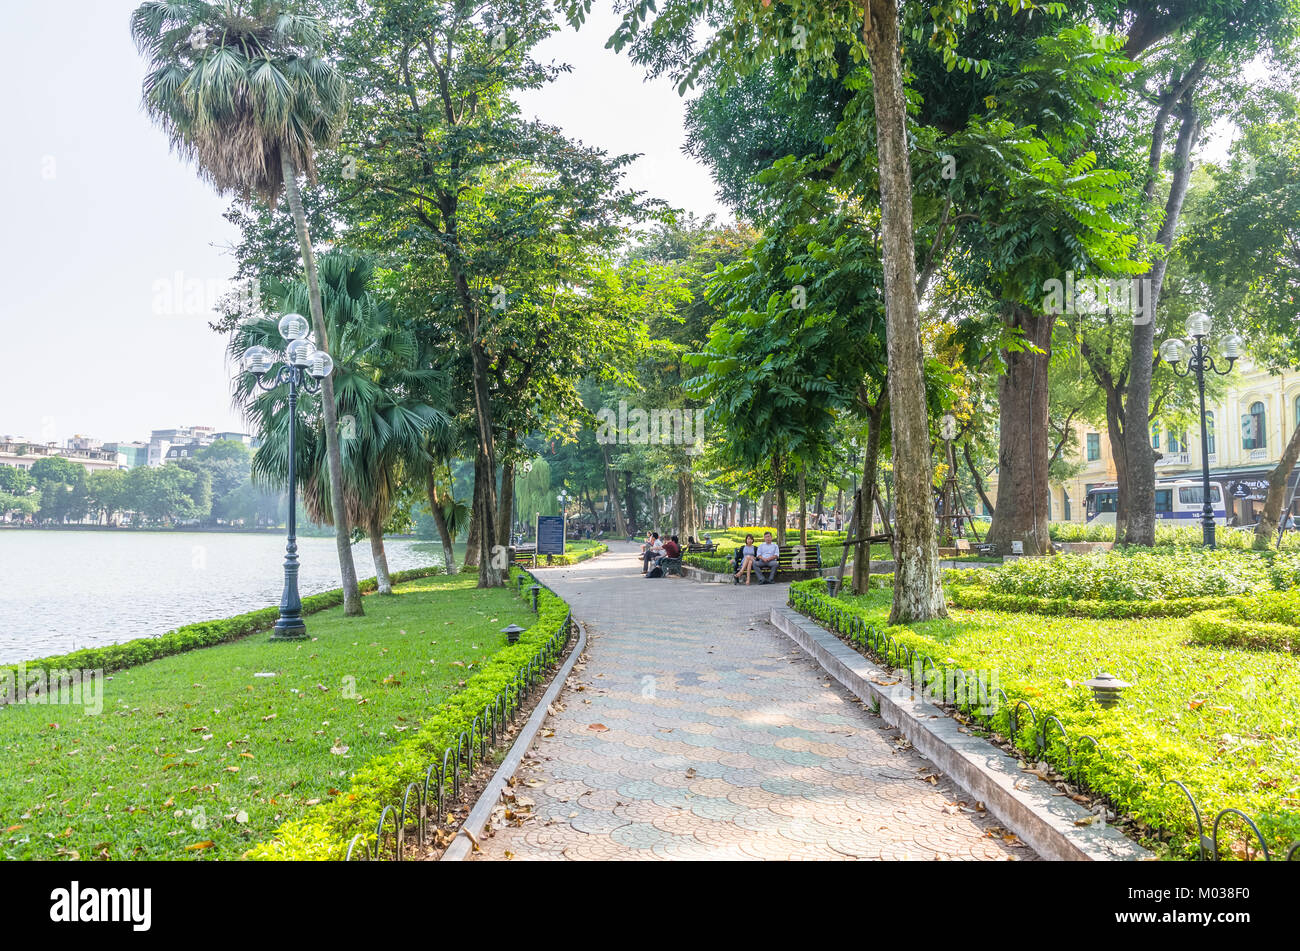 Hanoi,Vietnam - November 2,2017 : Scenic view of the lakeside of Hoan Kiem Lake, people can seen relaxing and exploring - Stock Image